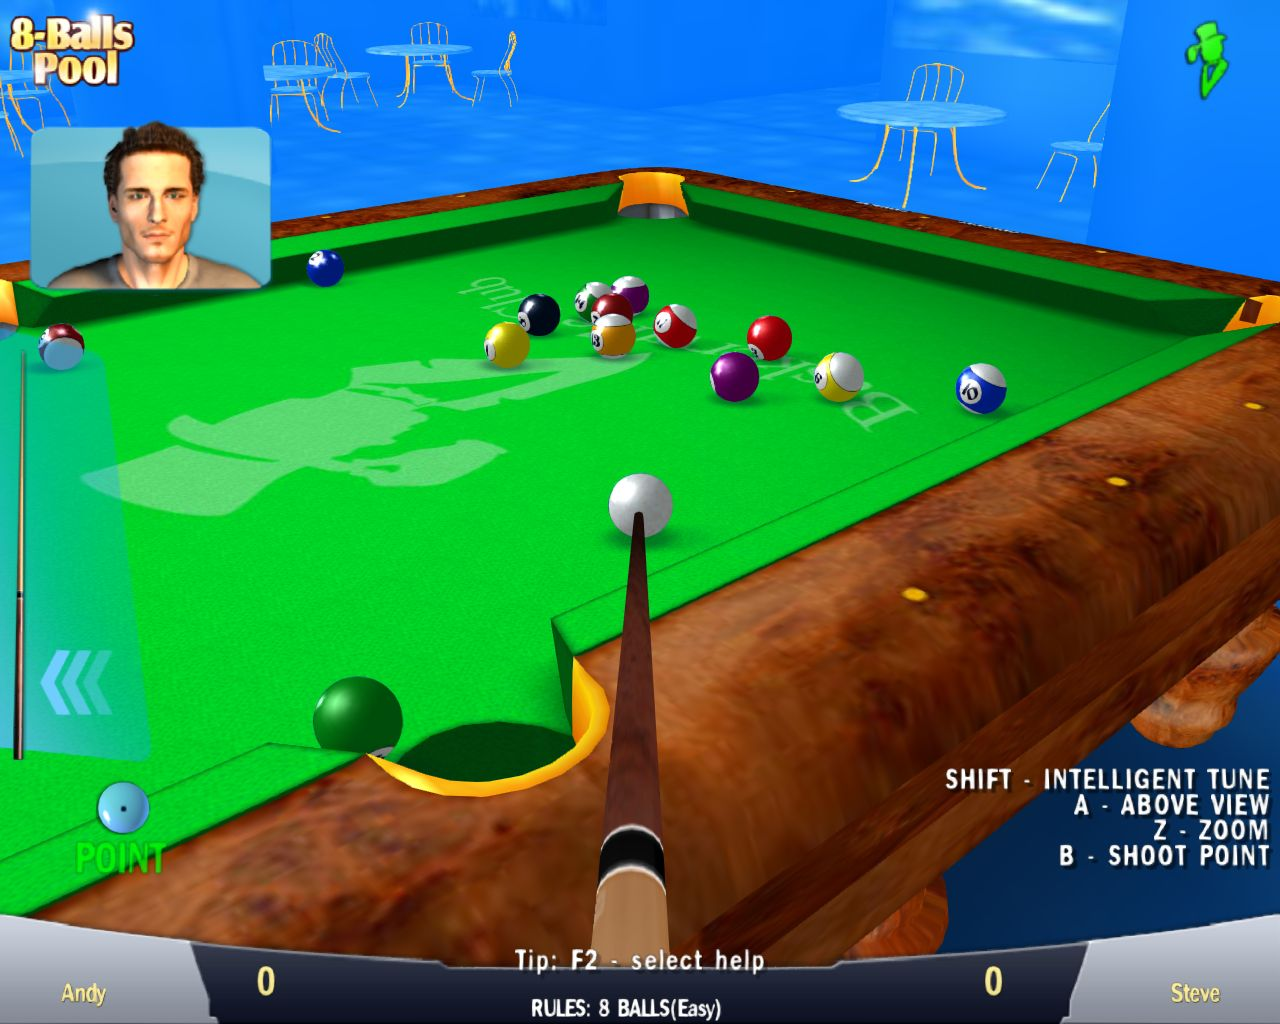 http://game.giveawayoftheday.com/wp-content/uploads/2012/12/Pool8Ball_002.jpg